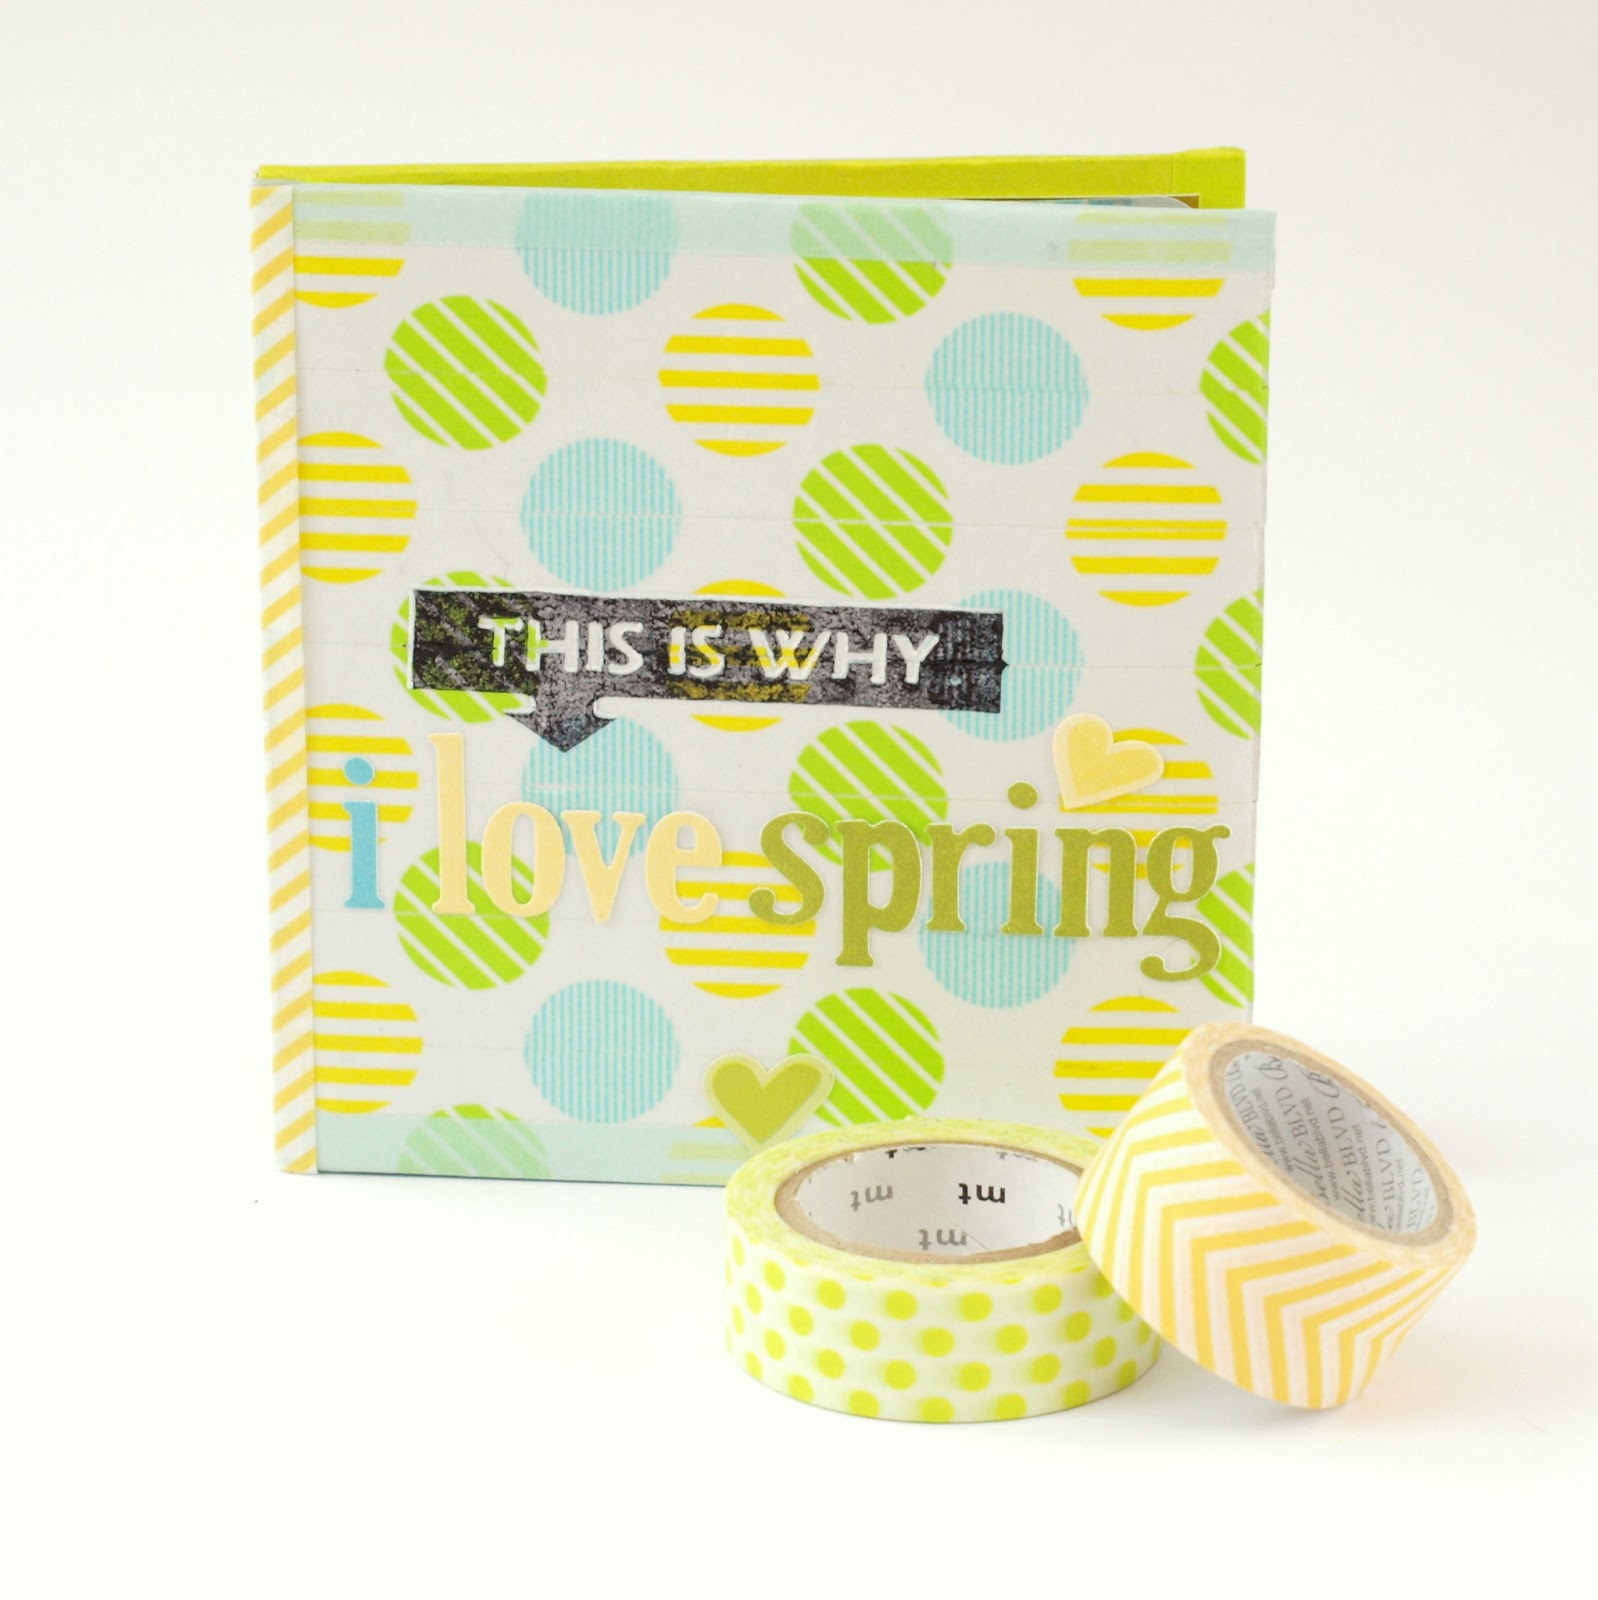 spring fling: minialbum 'i love spring' cover by momentstolivefor